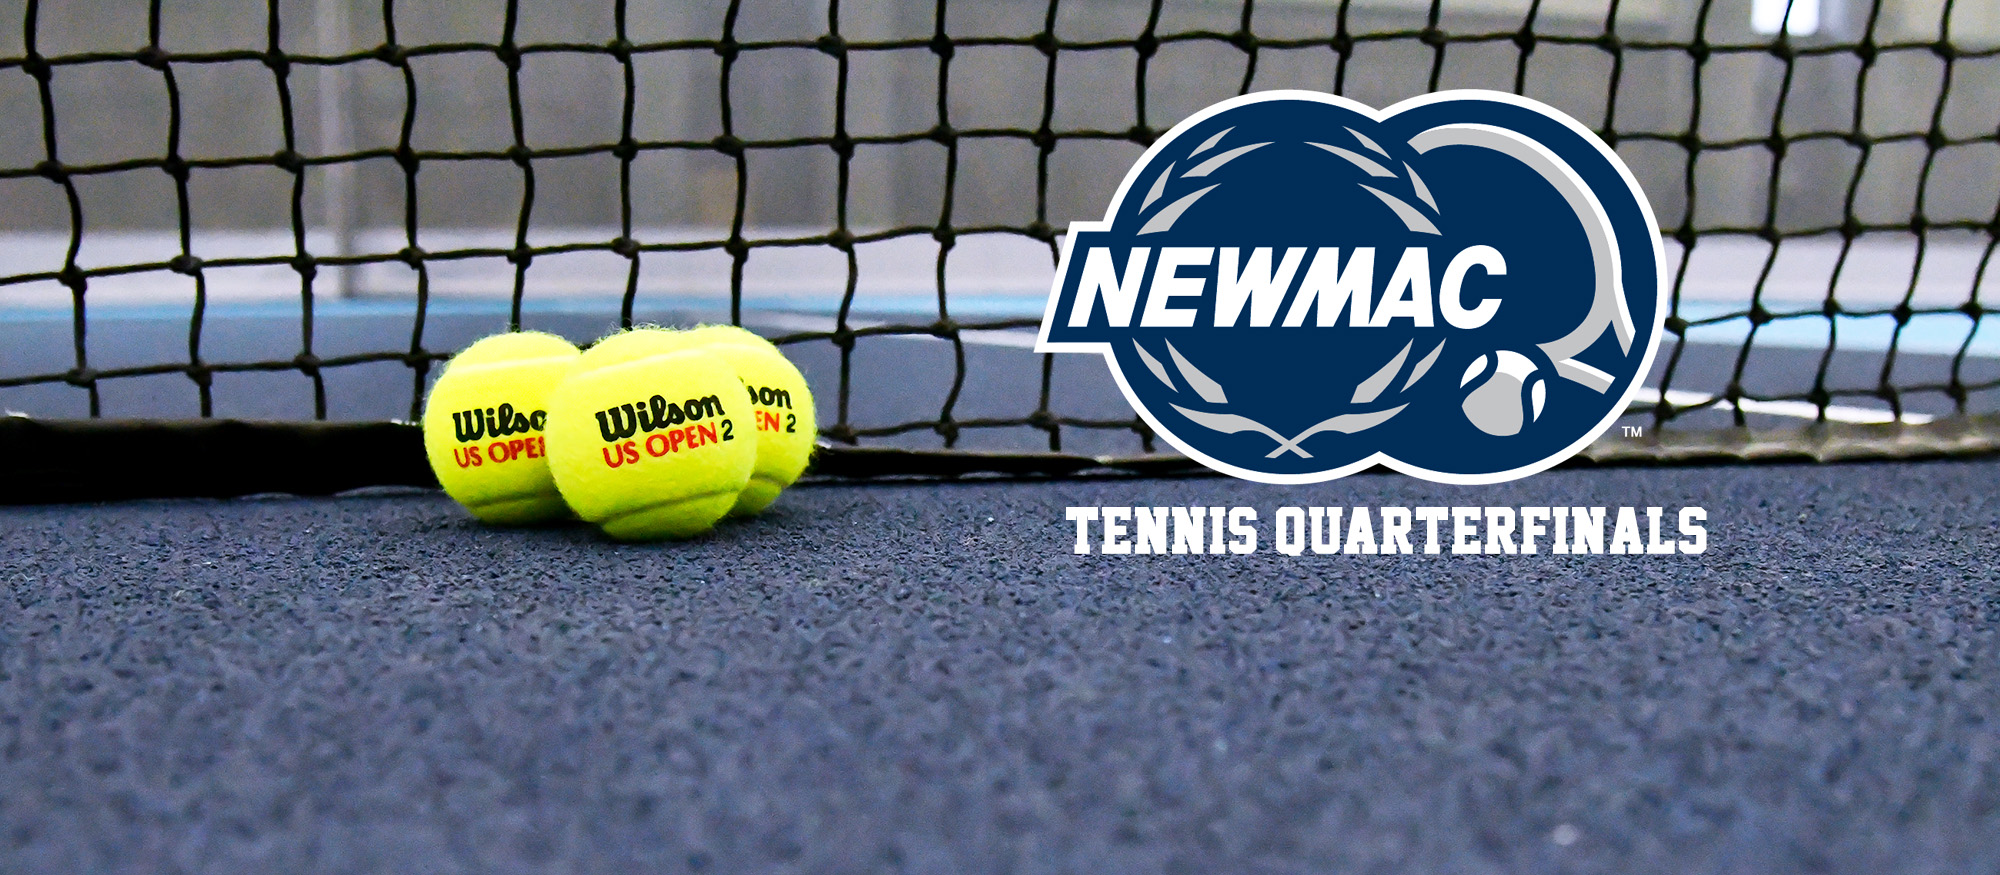 Graphic of a tennis court with a net and three balls. Also features the NEWMAC tennis logo.